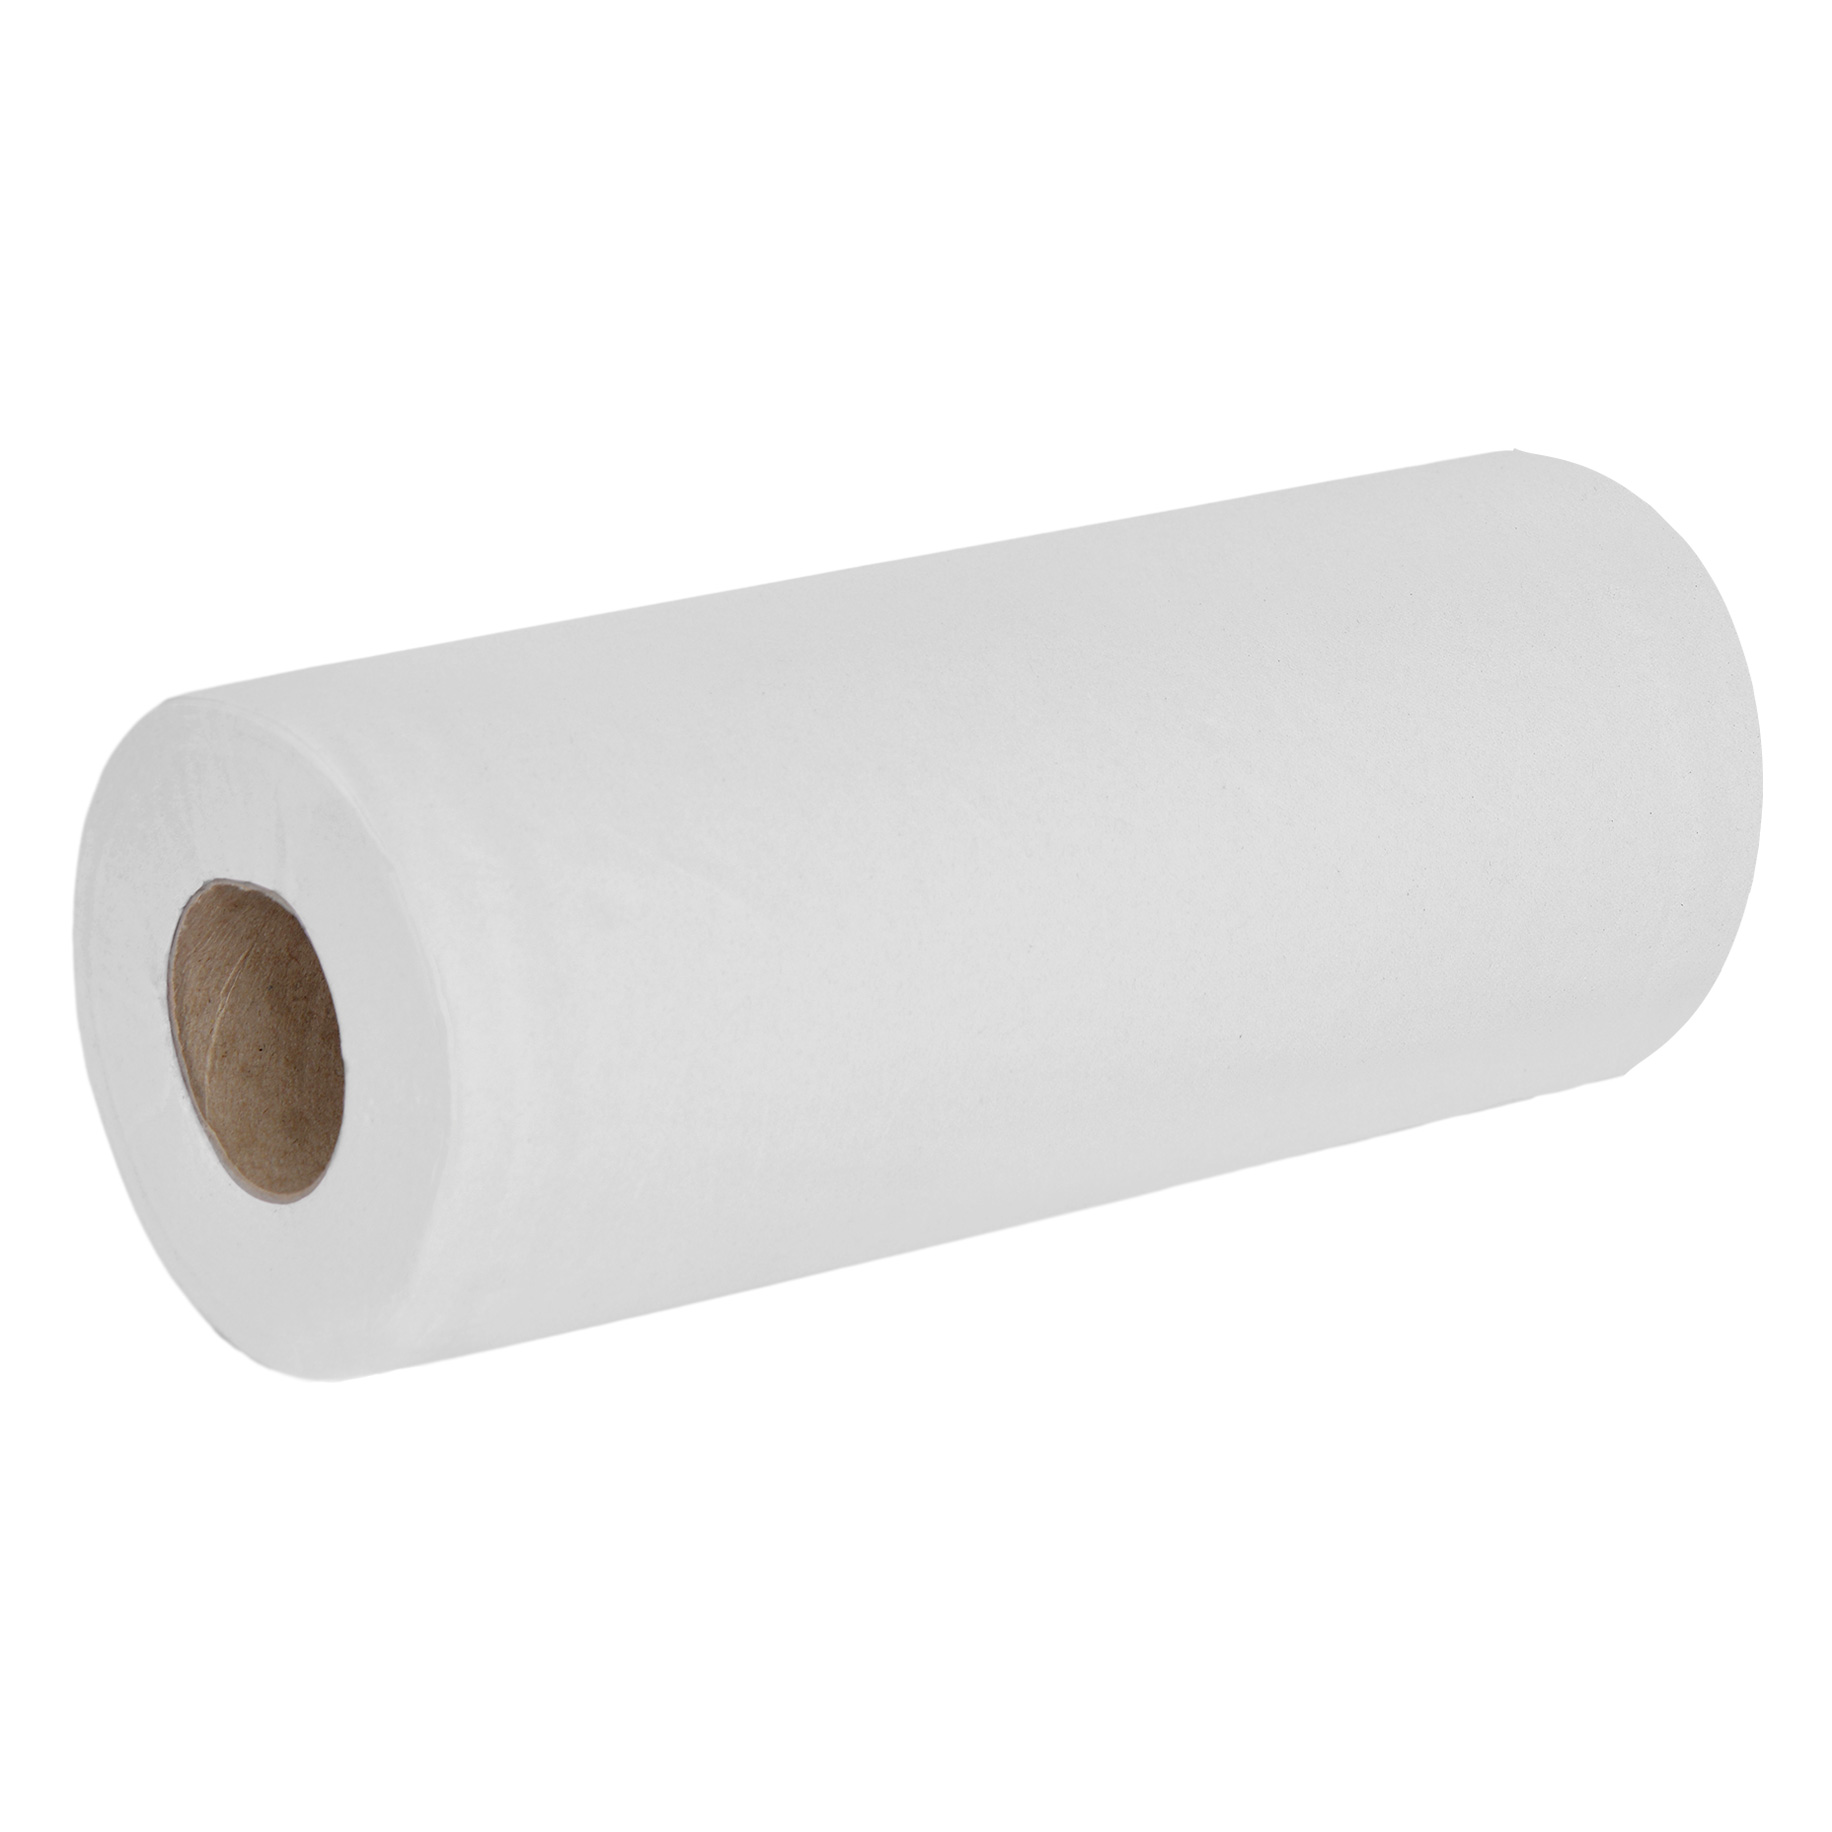 "Roll Towels Roll Towel (10"") - 2 ply, White"